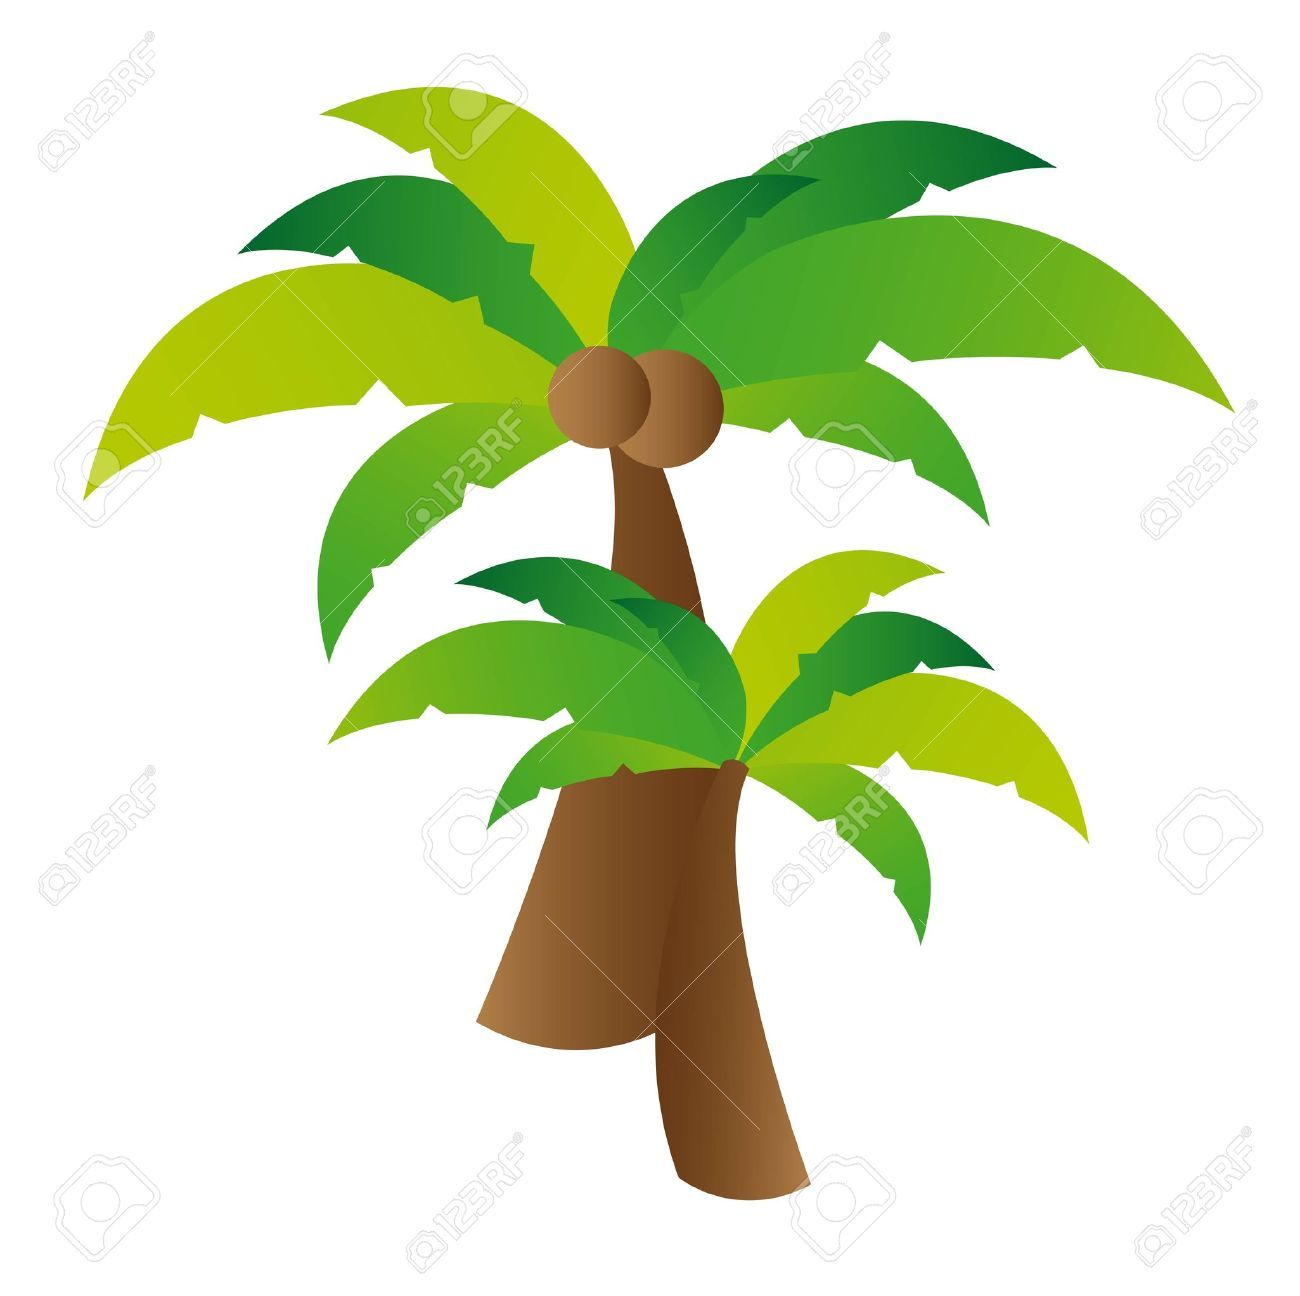 coconut tree illustration - Google 검색 | 바다 | Pinterest